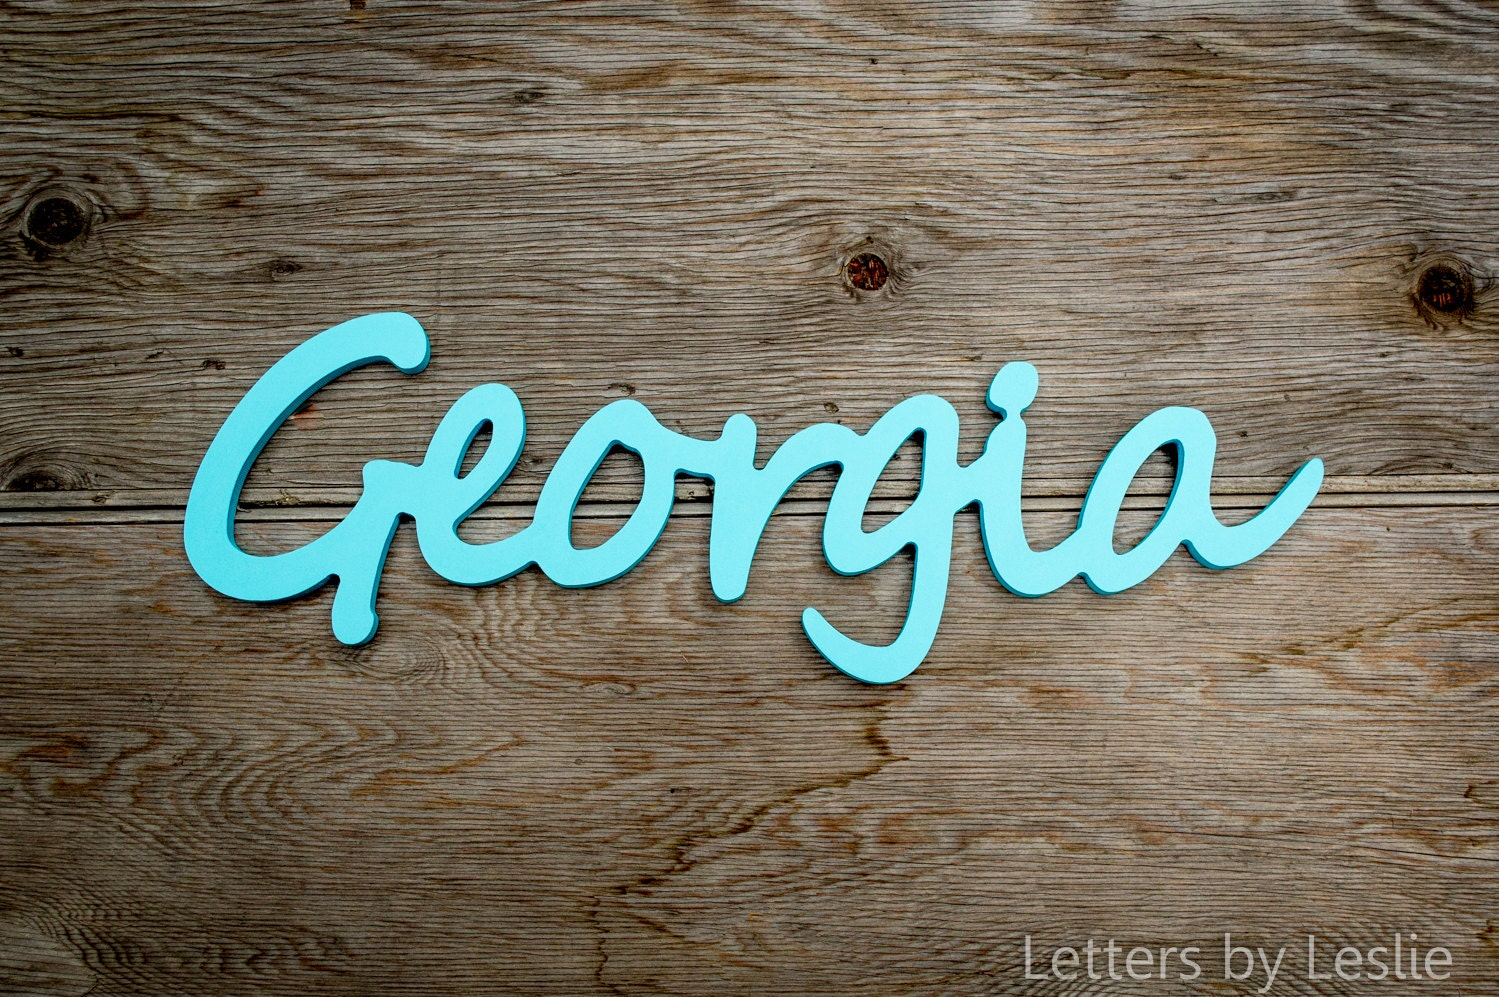 nursery decor nursery letters wooden letters name sign wood name